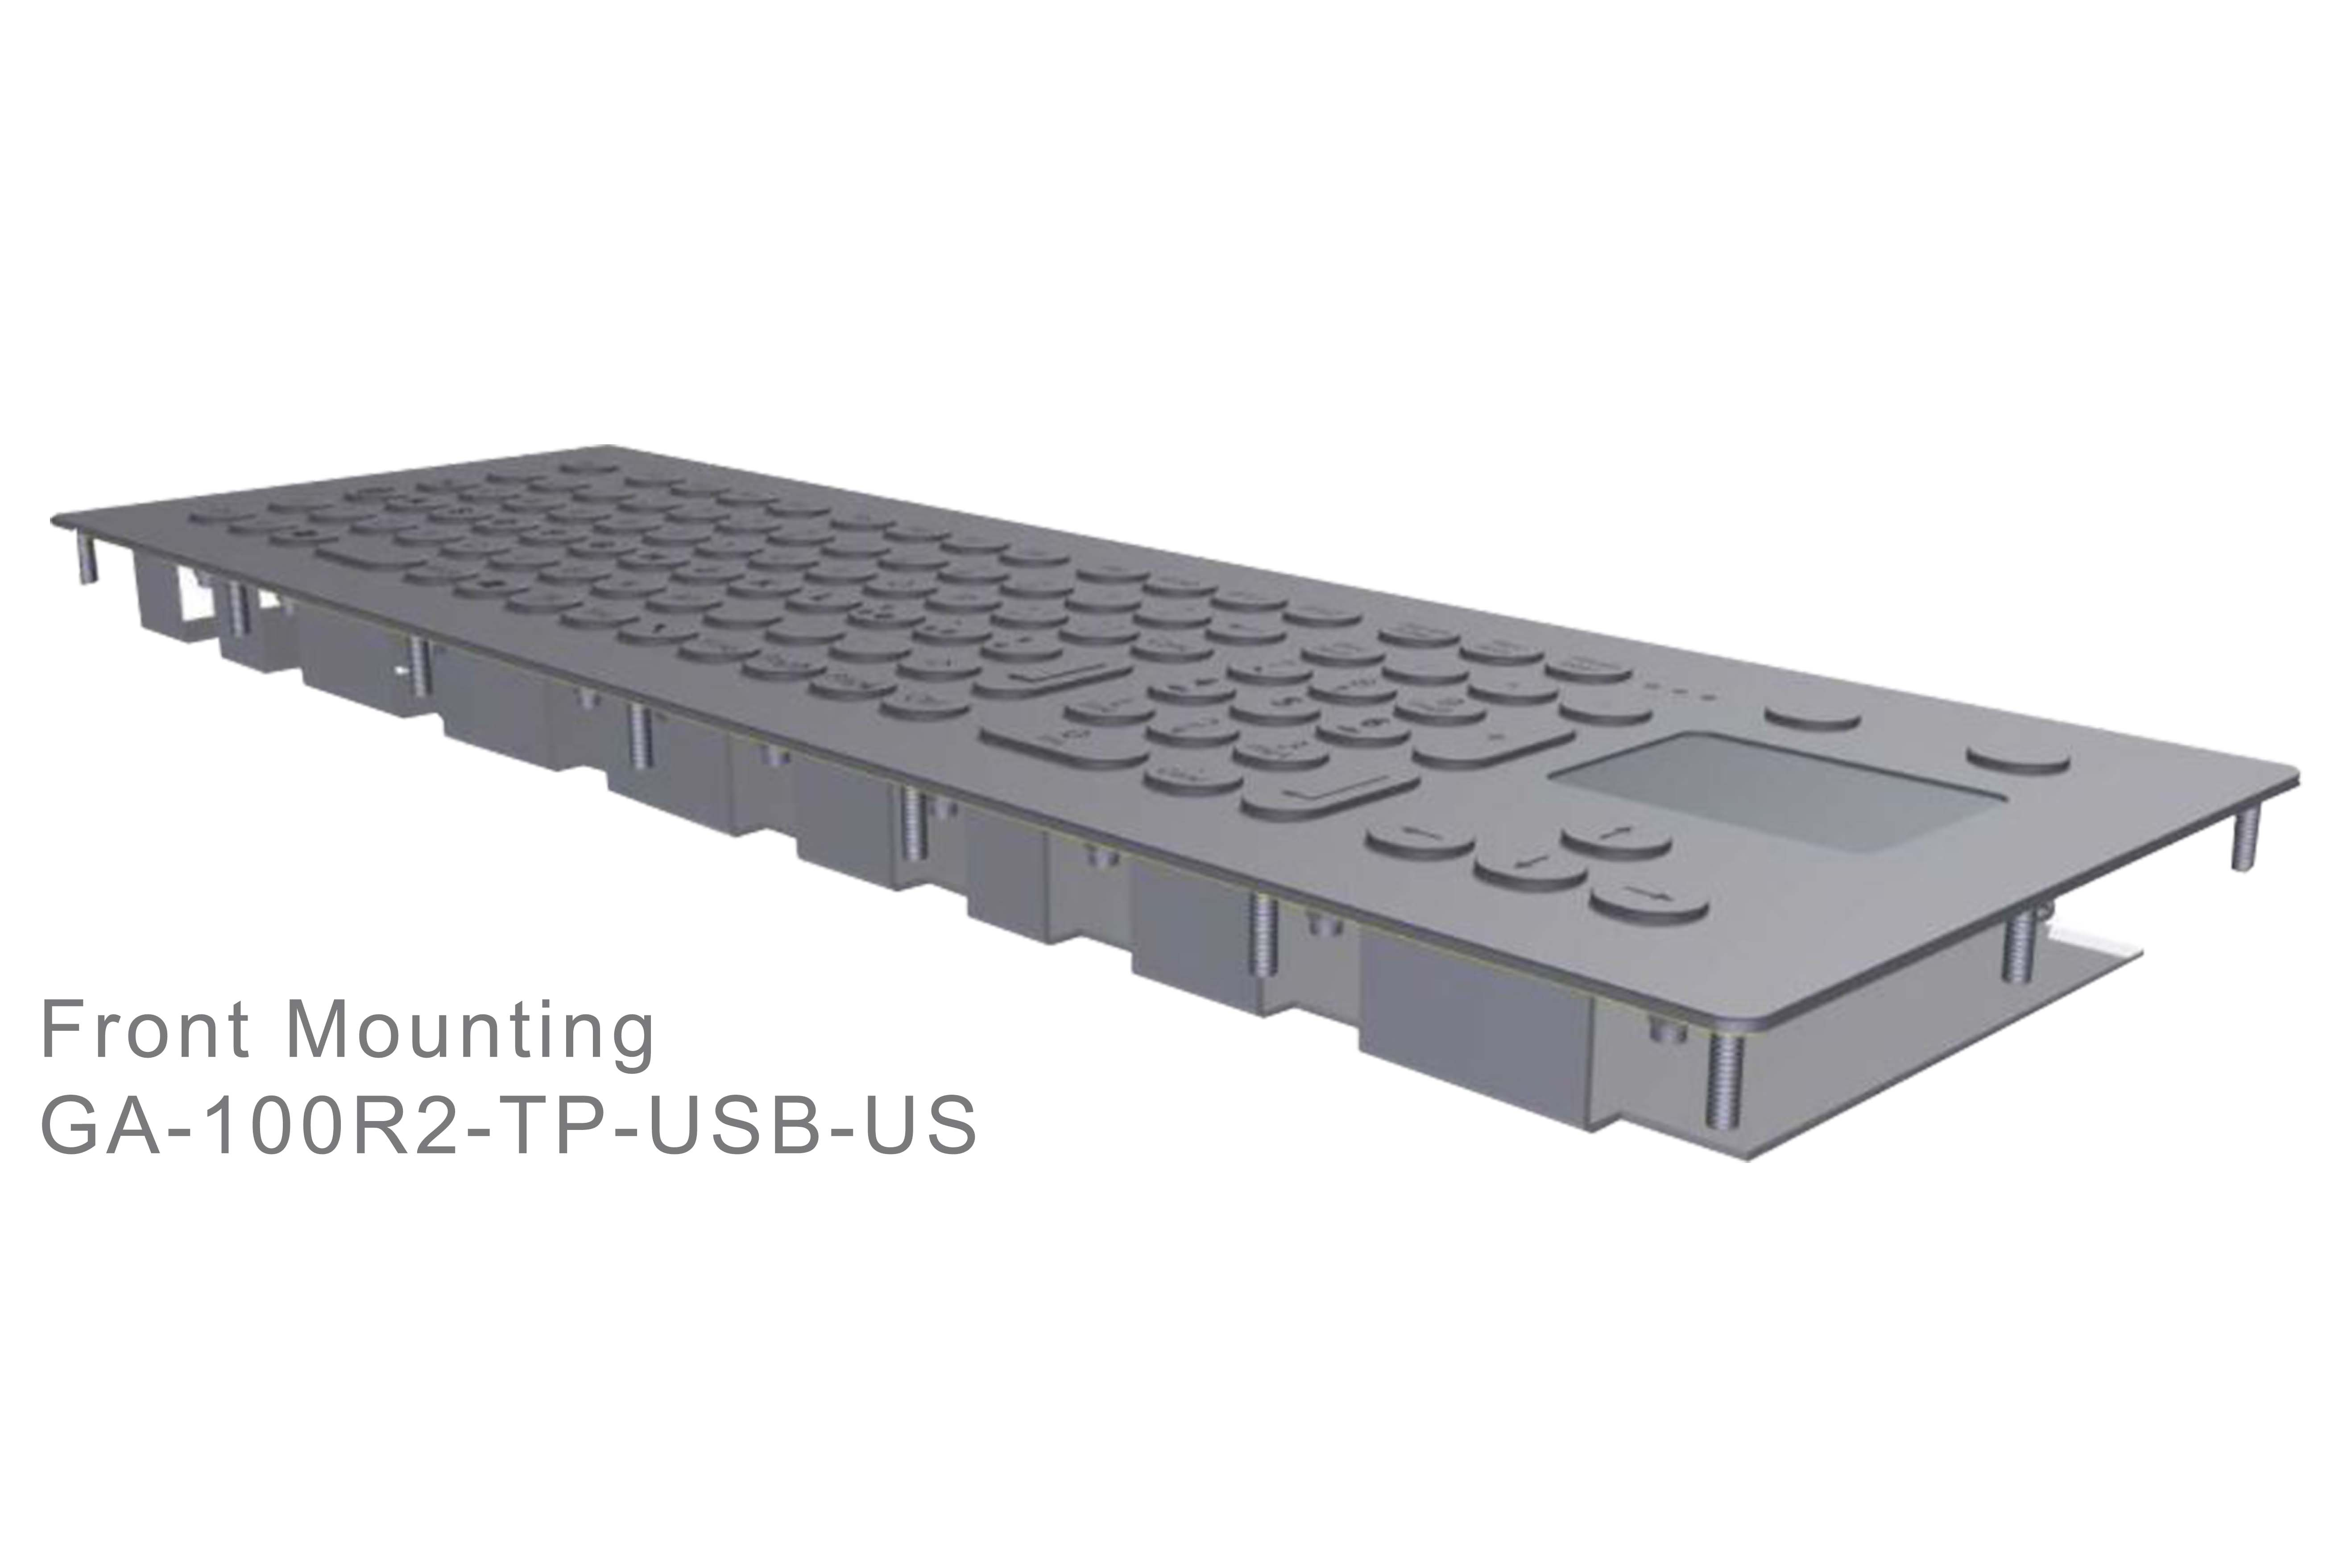 GA-Industrial-Italian Brand-100+Keys Touchpad Front Mounting-L